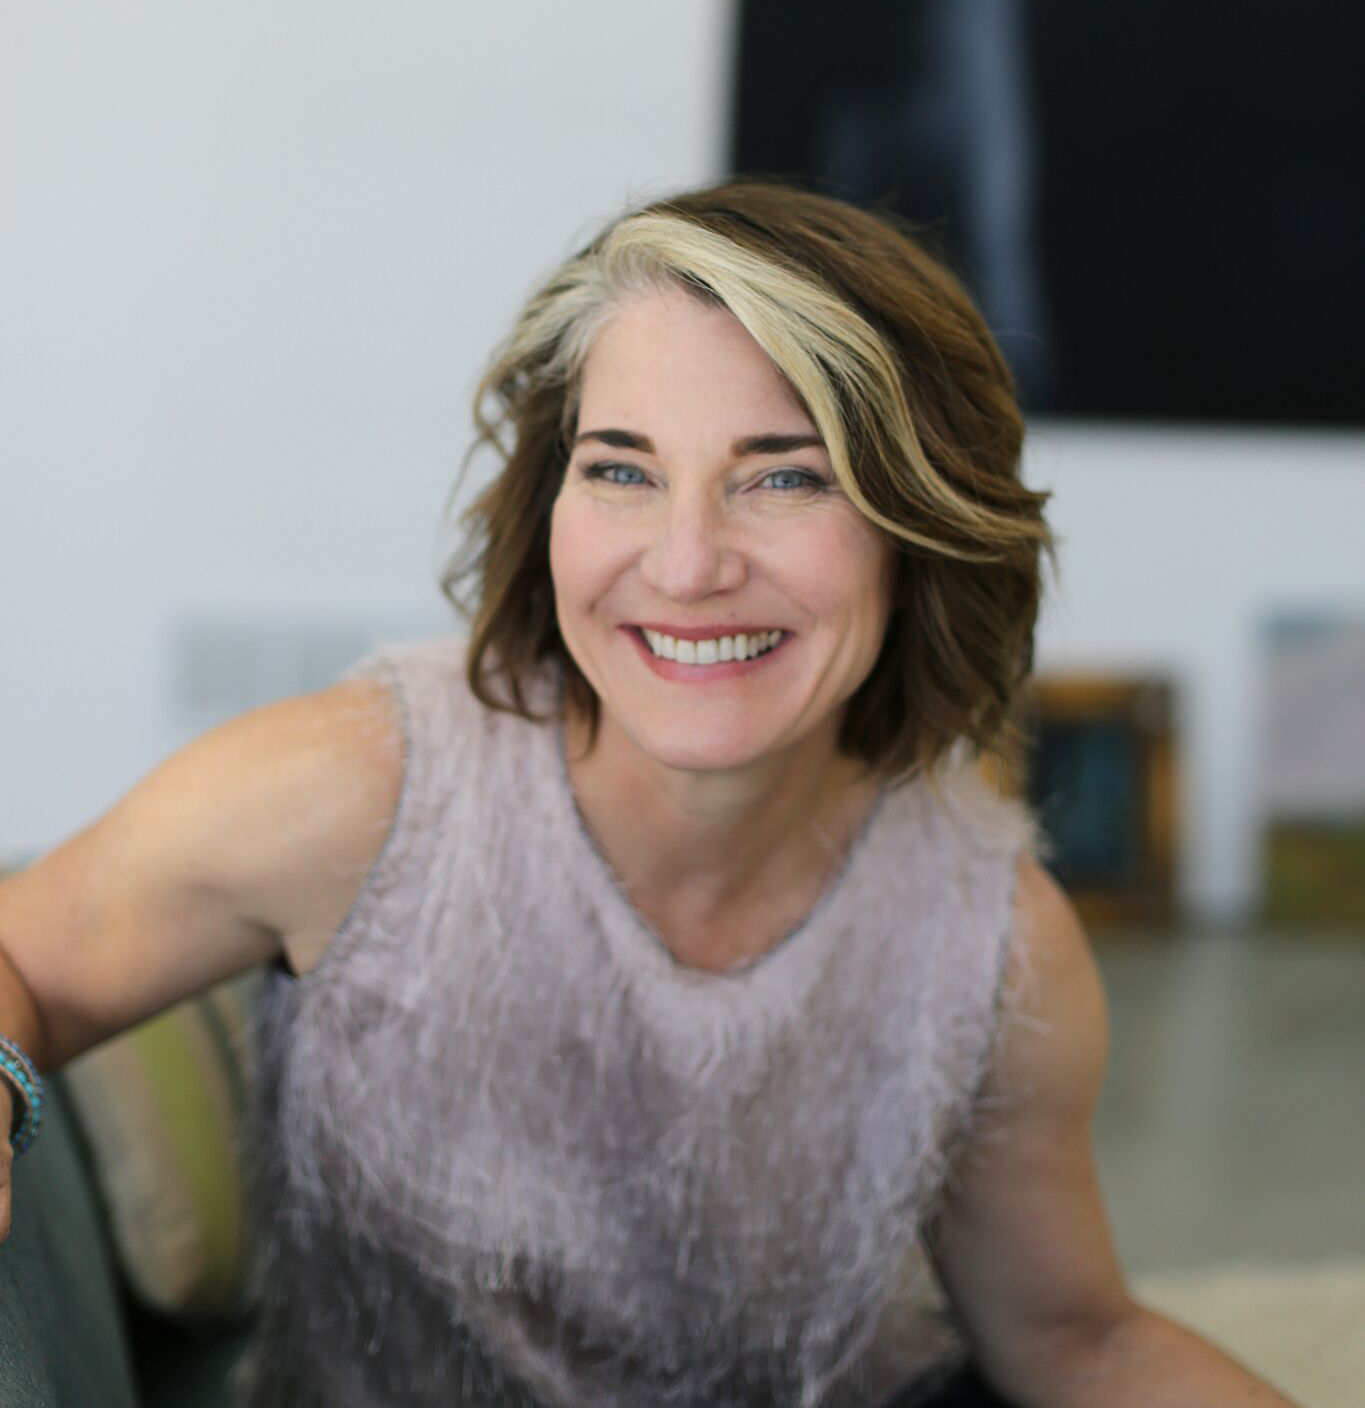 Jennifer Louden - a personal growth pioneer and best-selling author of The Woman's Comfort Book